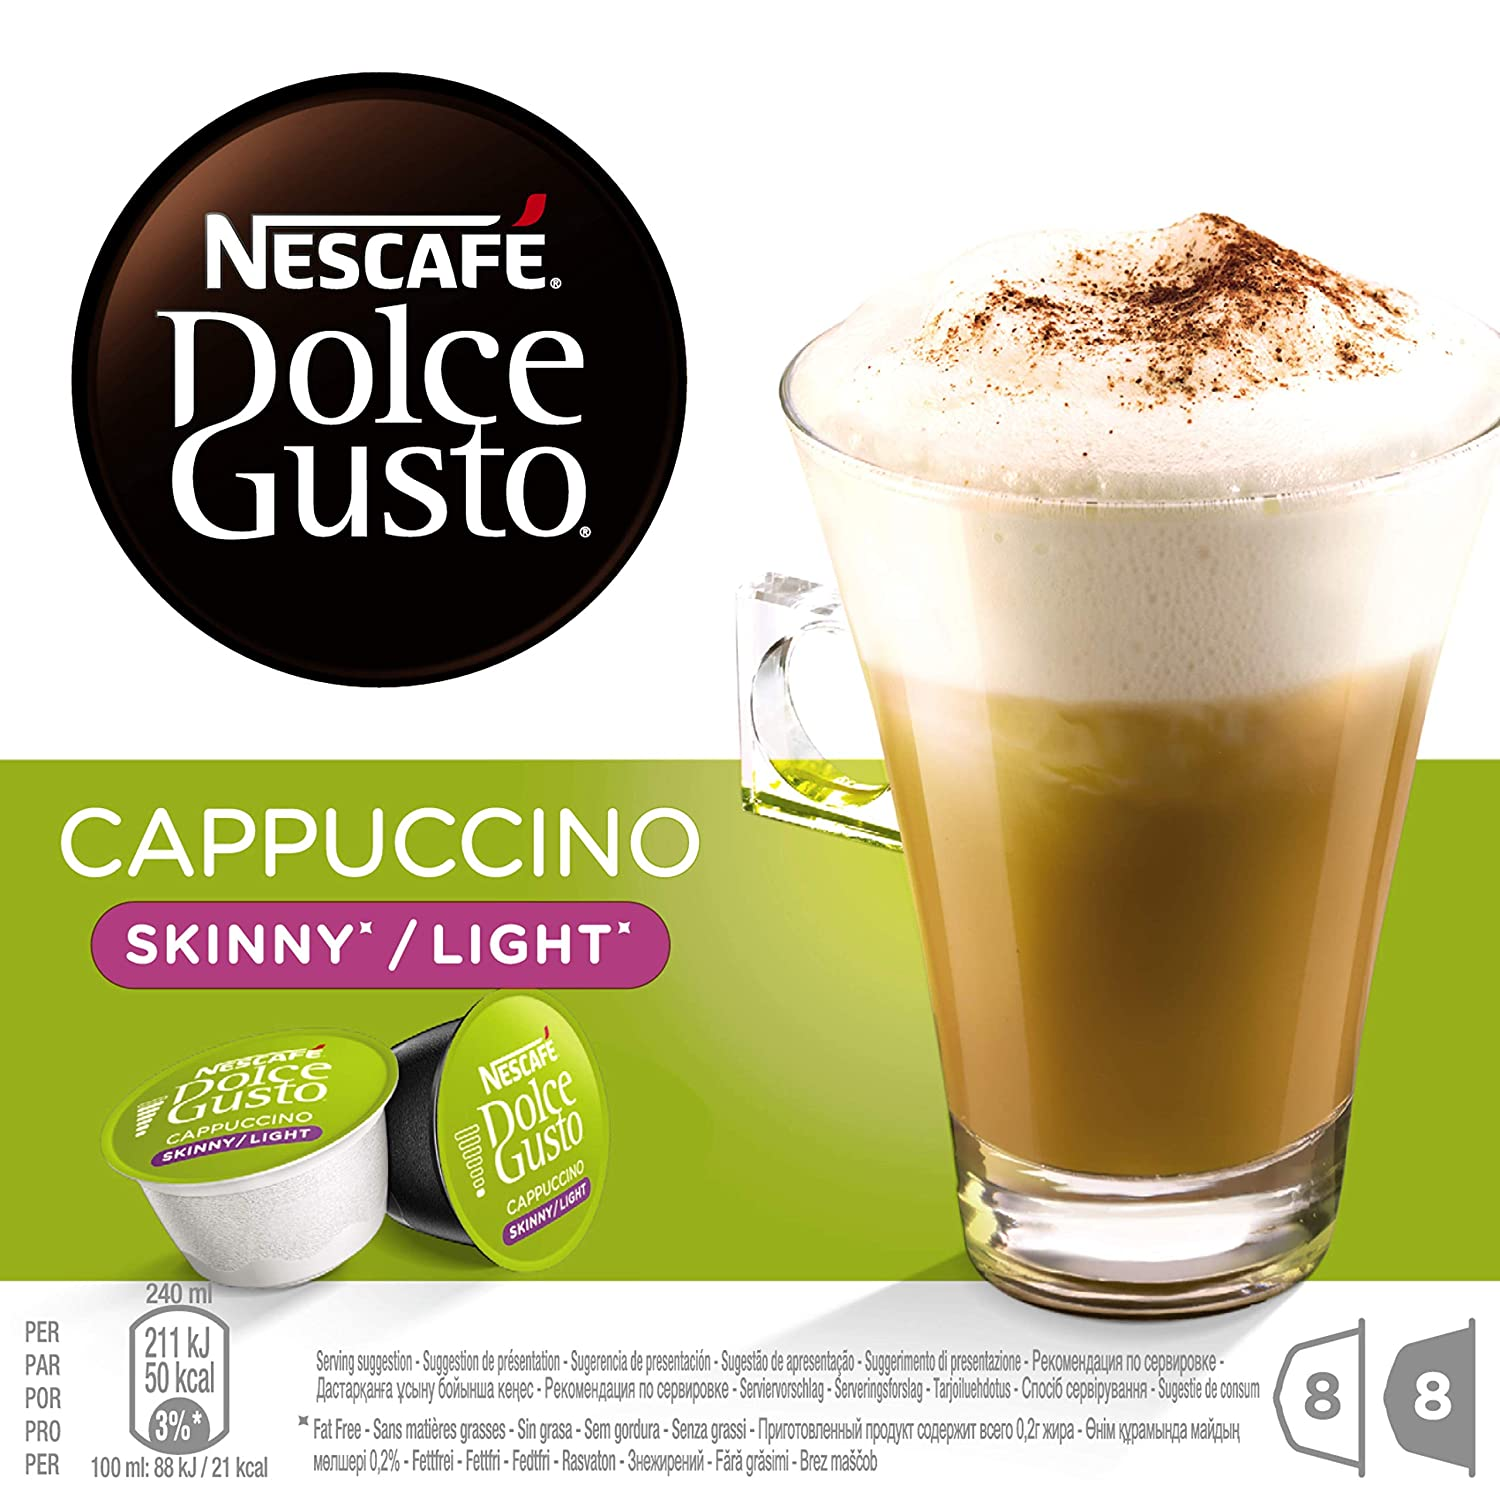 Nescaf? Dolce Gusto Skinny Cappuccino 16 Capsules, 8 servings (Pack of 3, Total 48 Capsules, 24 Servings)